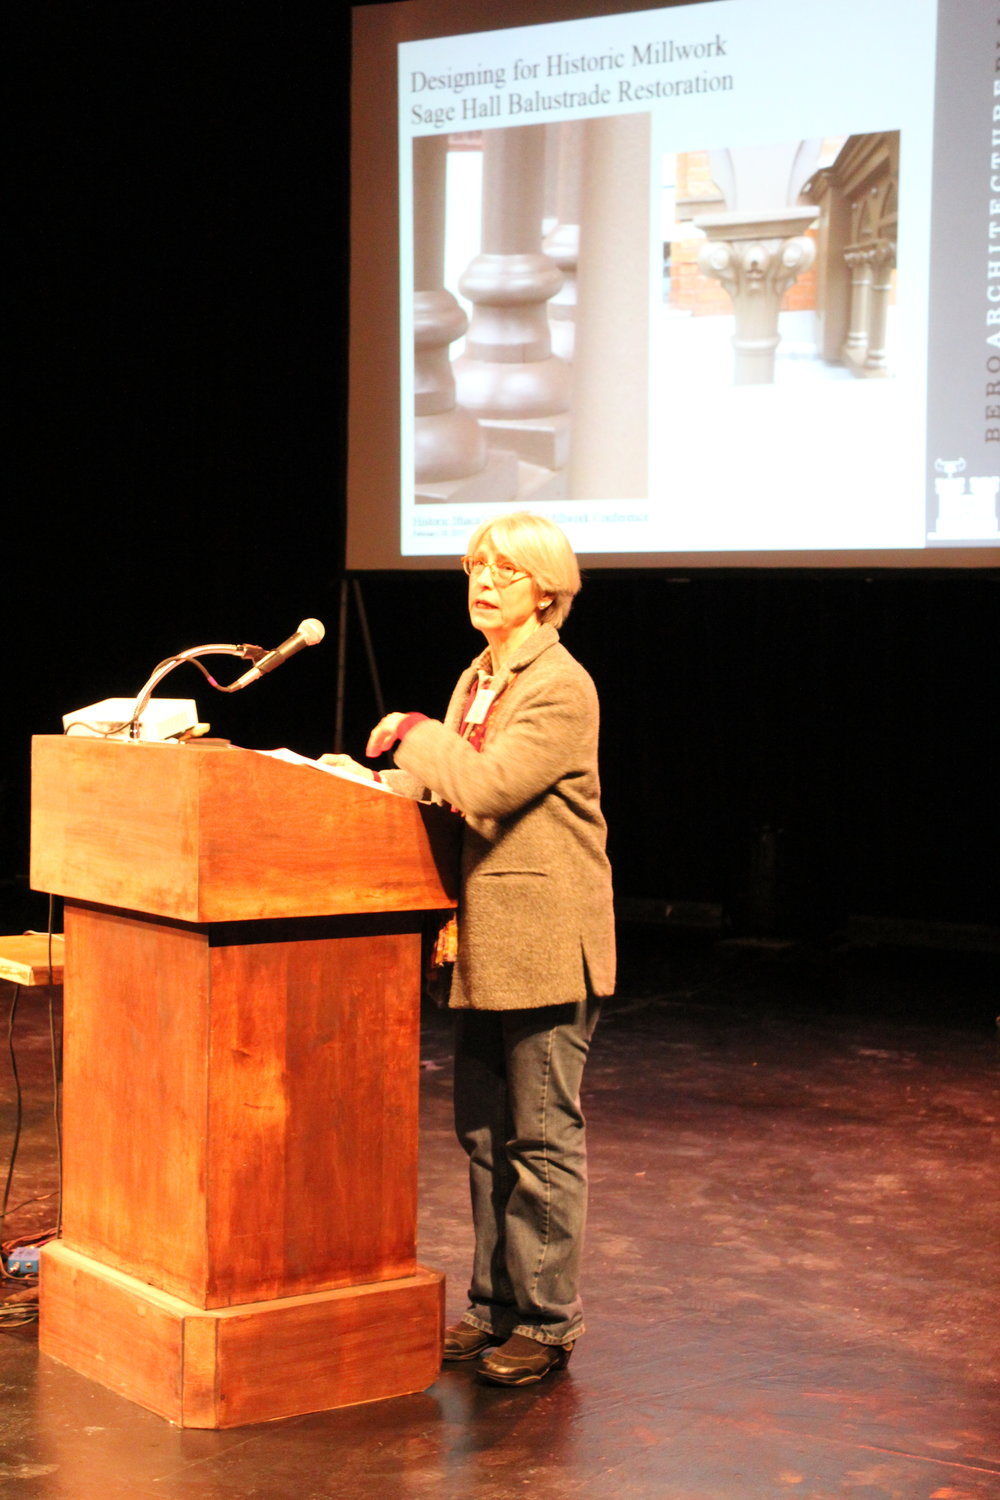 2015-HPEF-PiT-Historic Ithaca-Virginia Searl keynote on Sage Hall balustrades.jpg